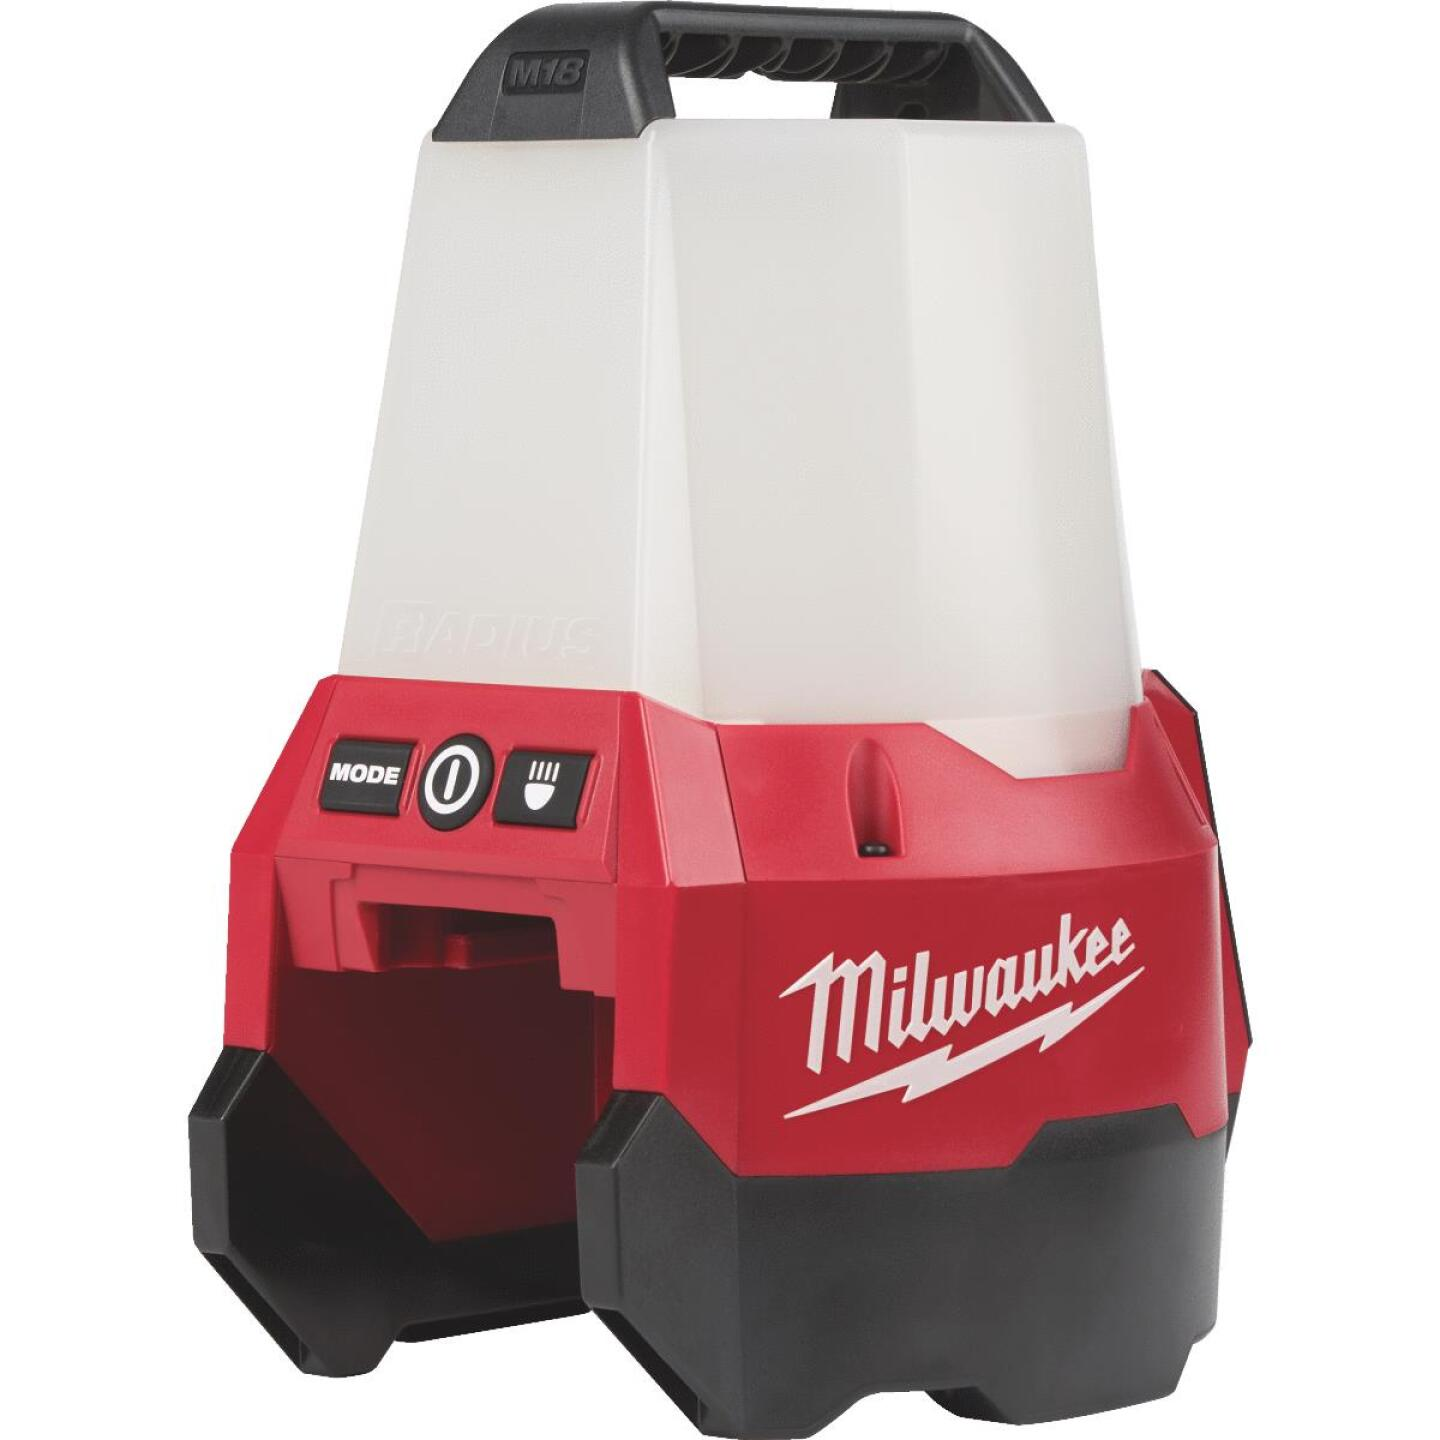 Milwaukee M18 RADIUS 18 Volt Lithium-Ion LED Cordless Work Light with Flood Mode (Bare Tool) Image 1